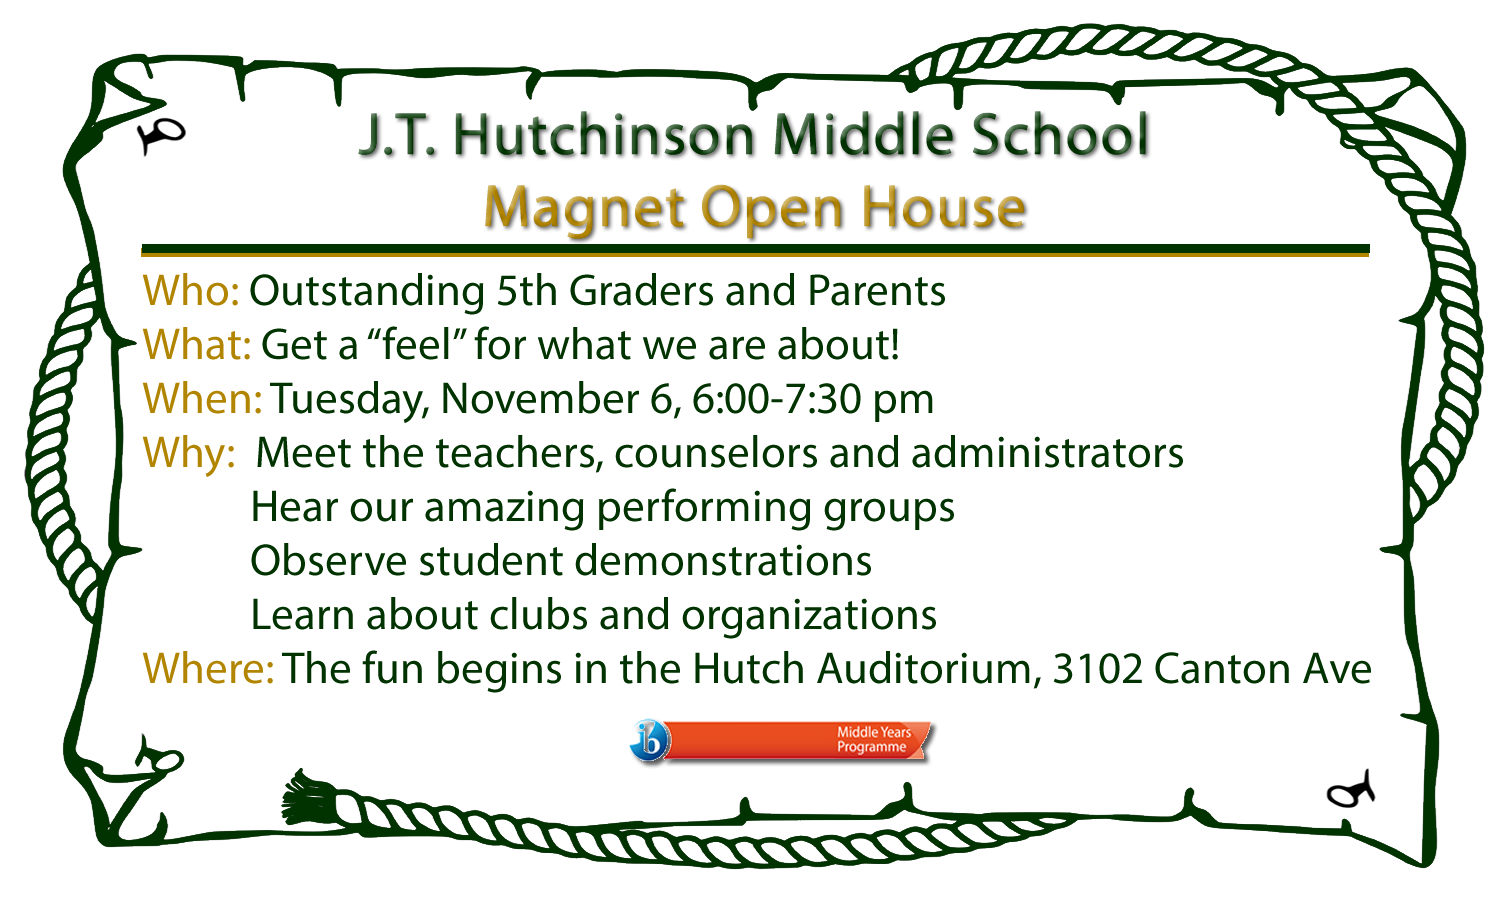 Magnet Open House November 6 from 6 - 7:30